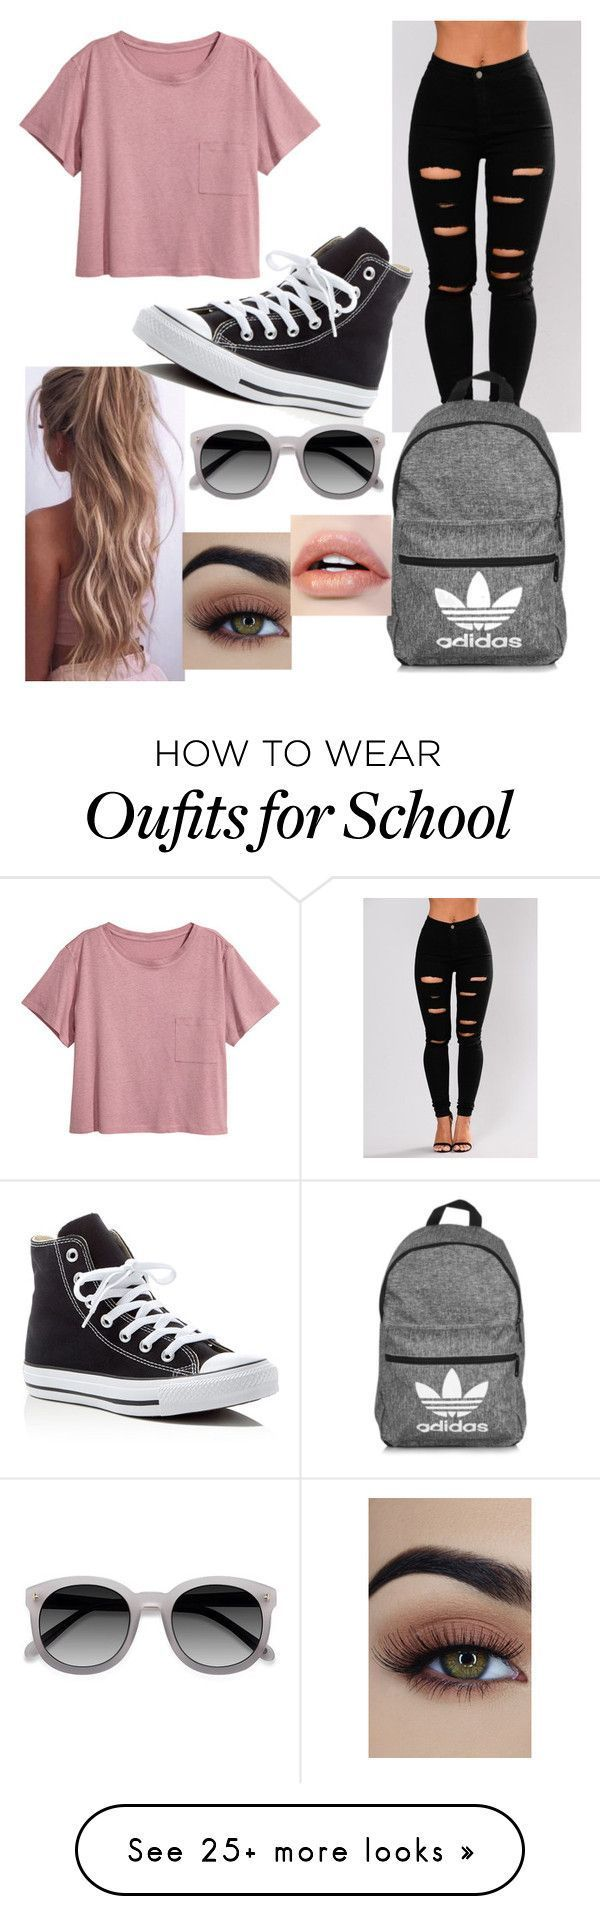 3971 best Clothes images on Pinterest | Woman fashion, Casual wear ...